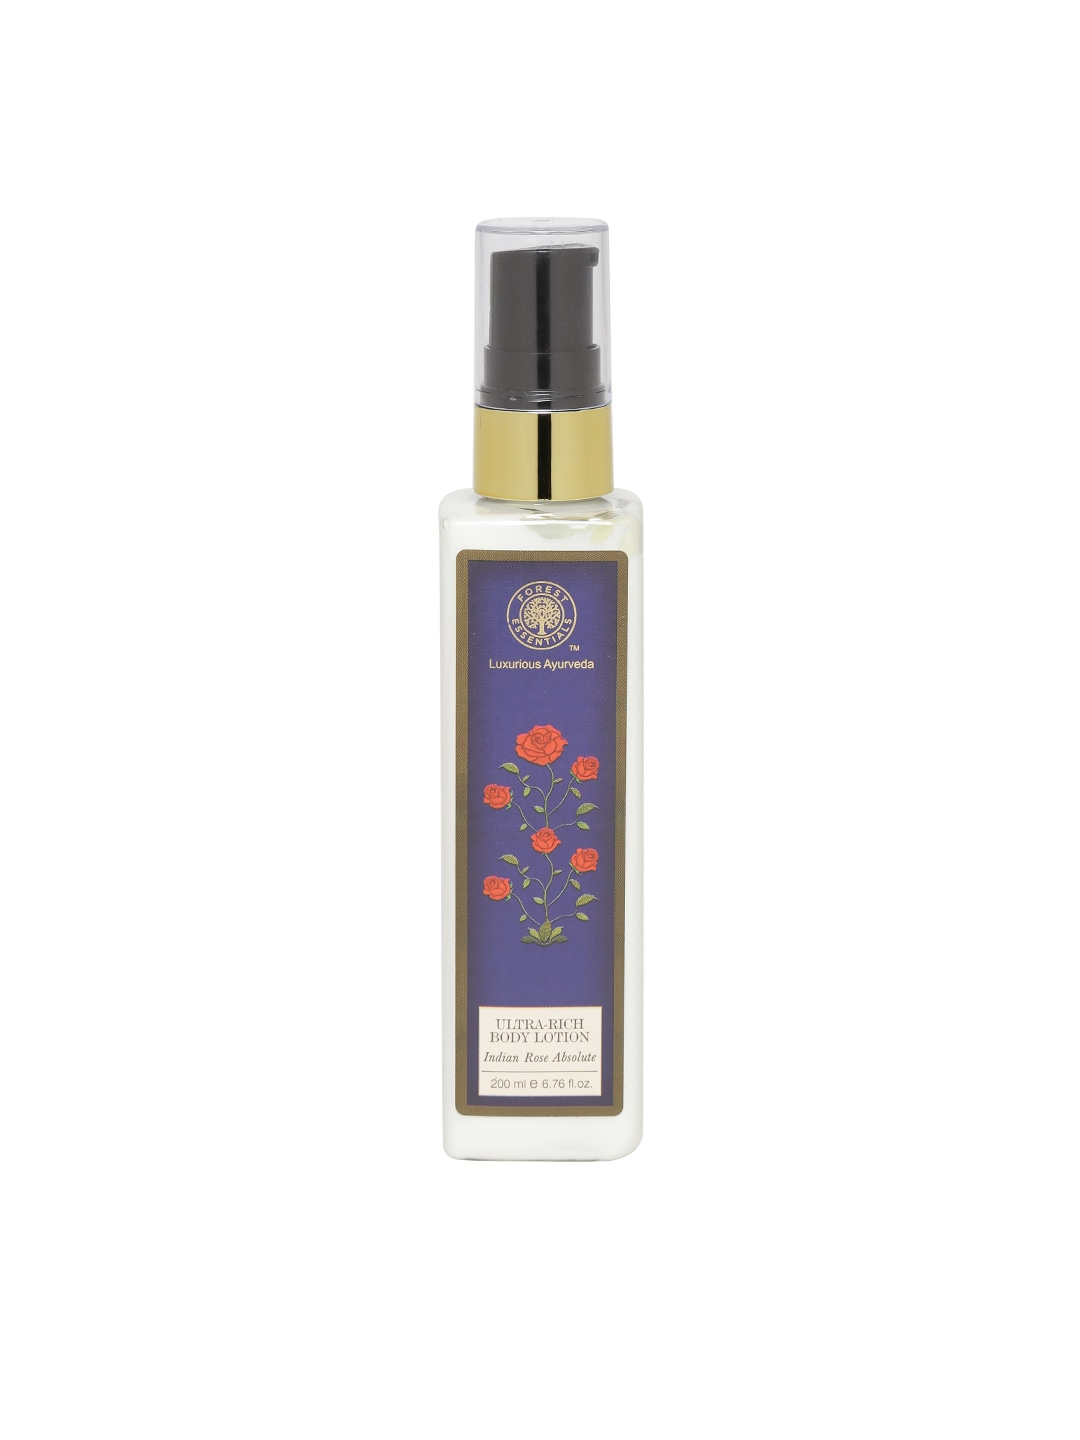 Forest Essentials Unisex Ultra-Rich Indian Rose Absolute Body Lotion image